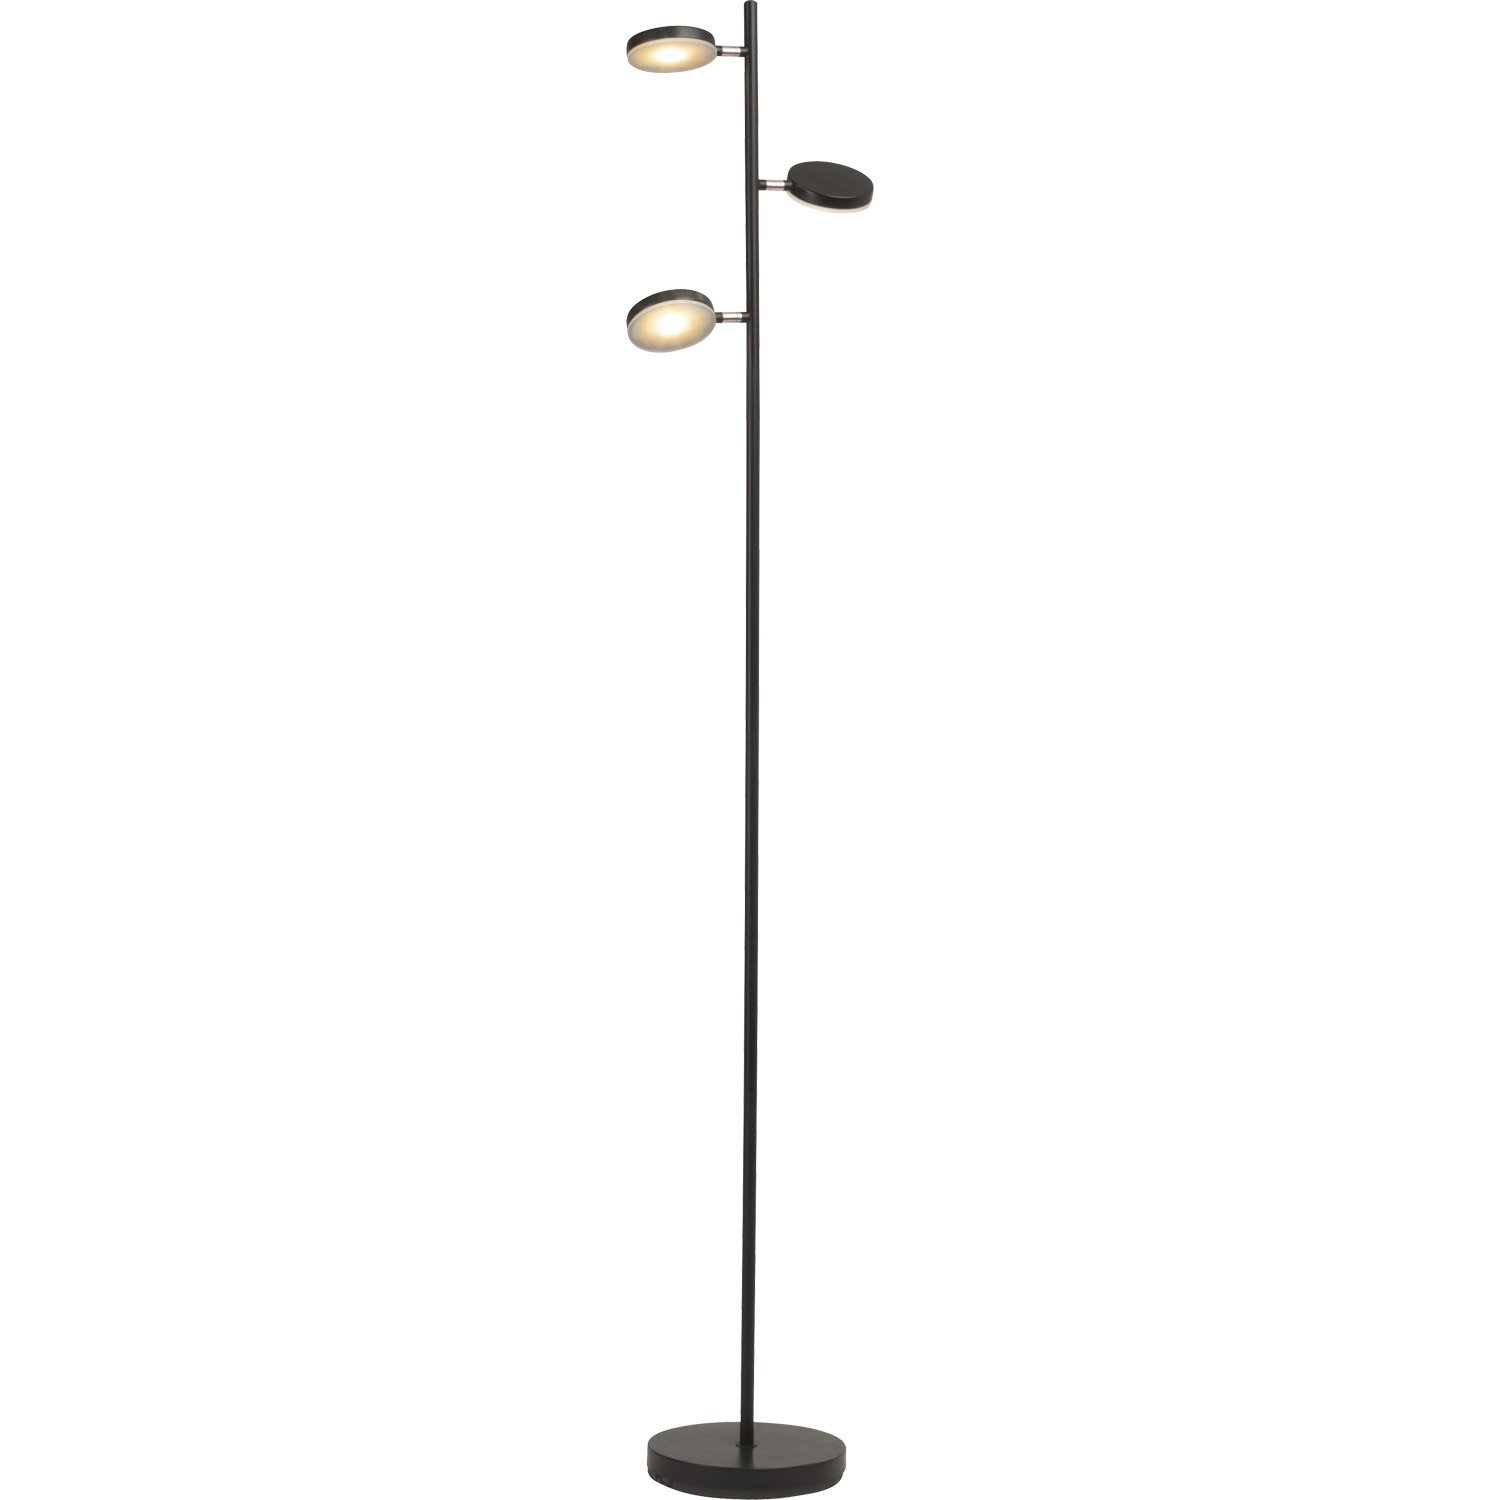 lampadaire led chlea brilliant 168 cm 6 w leroy merlin. Black Bedroom Furniture Sets. Home Design Ideas